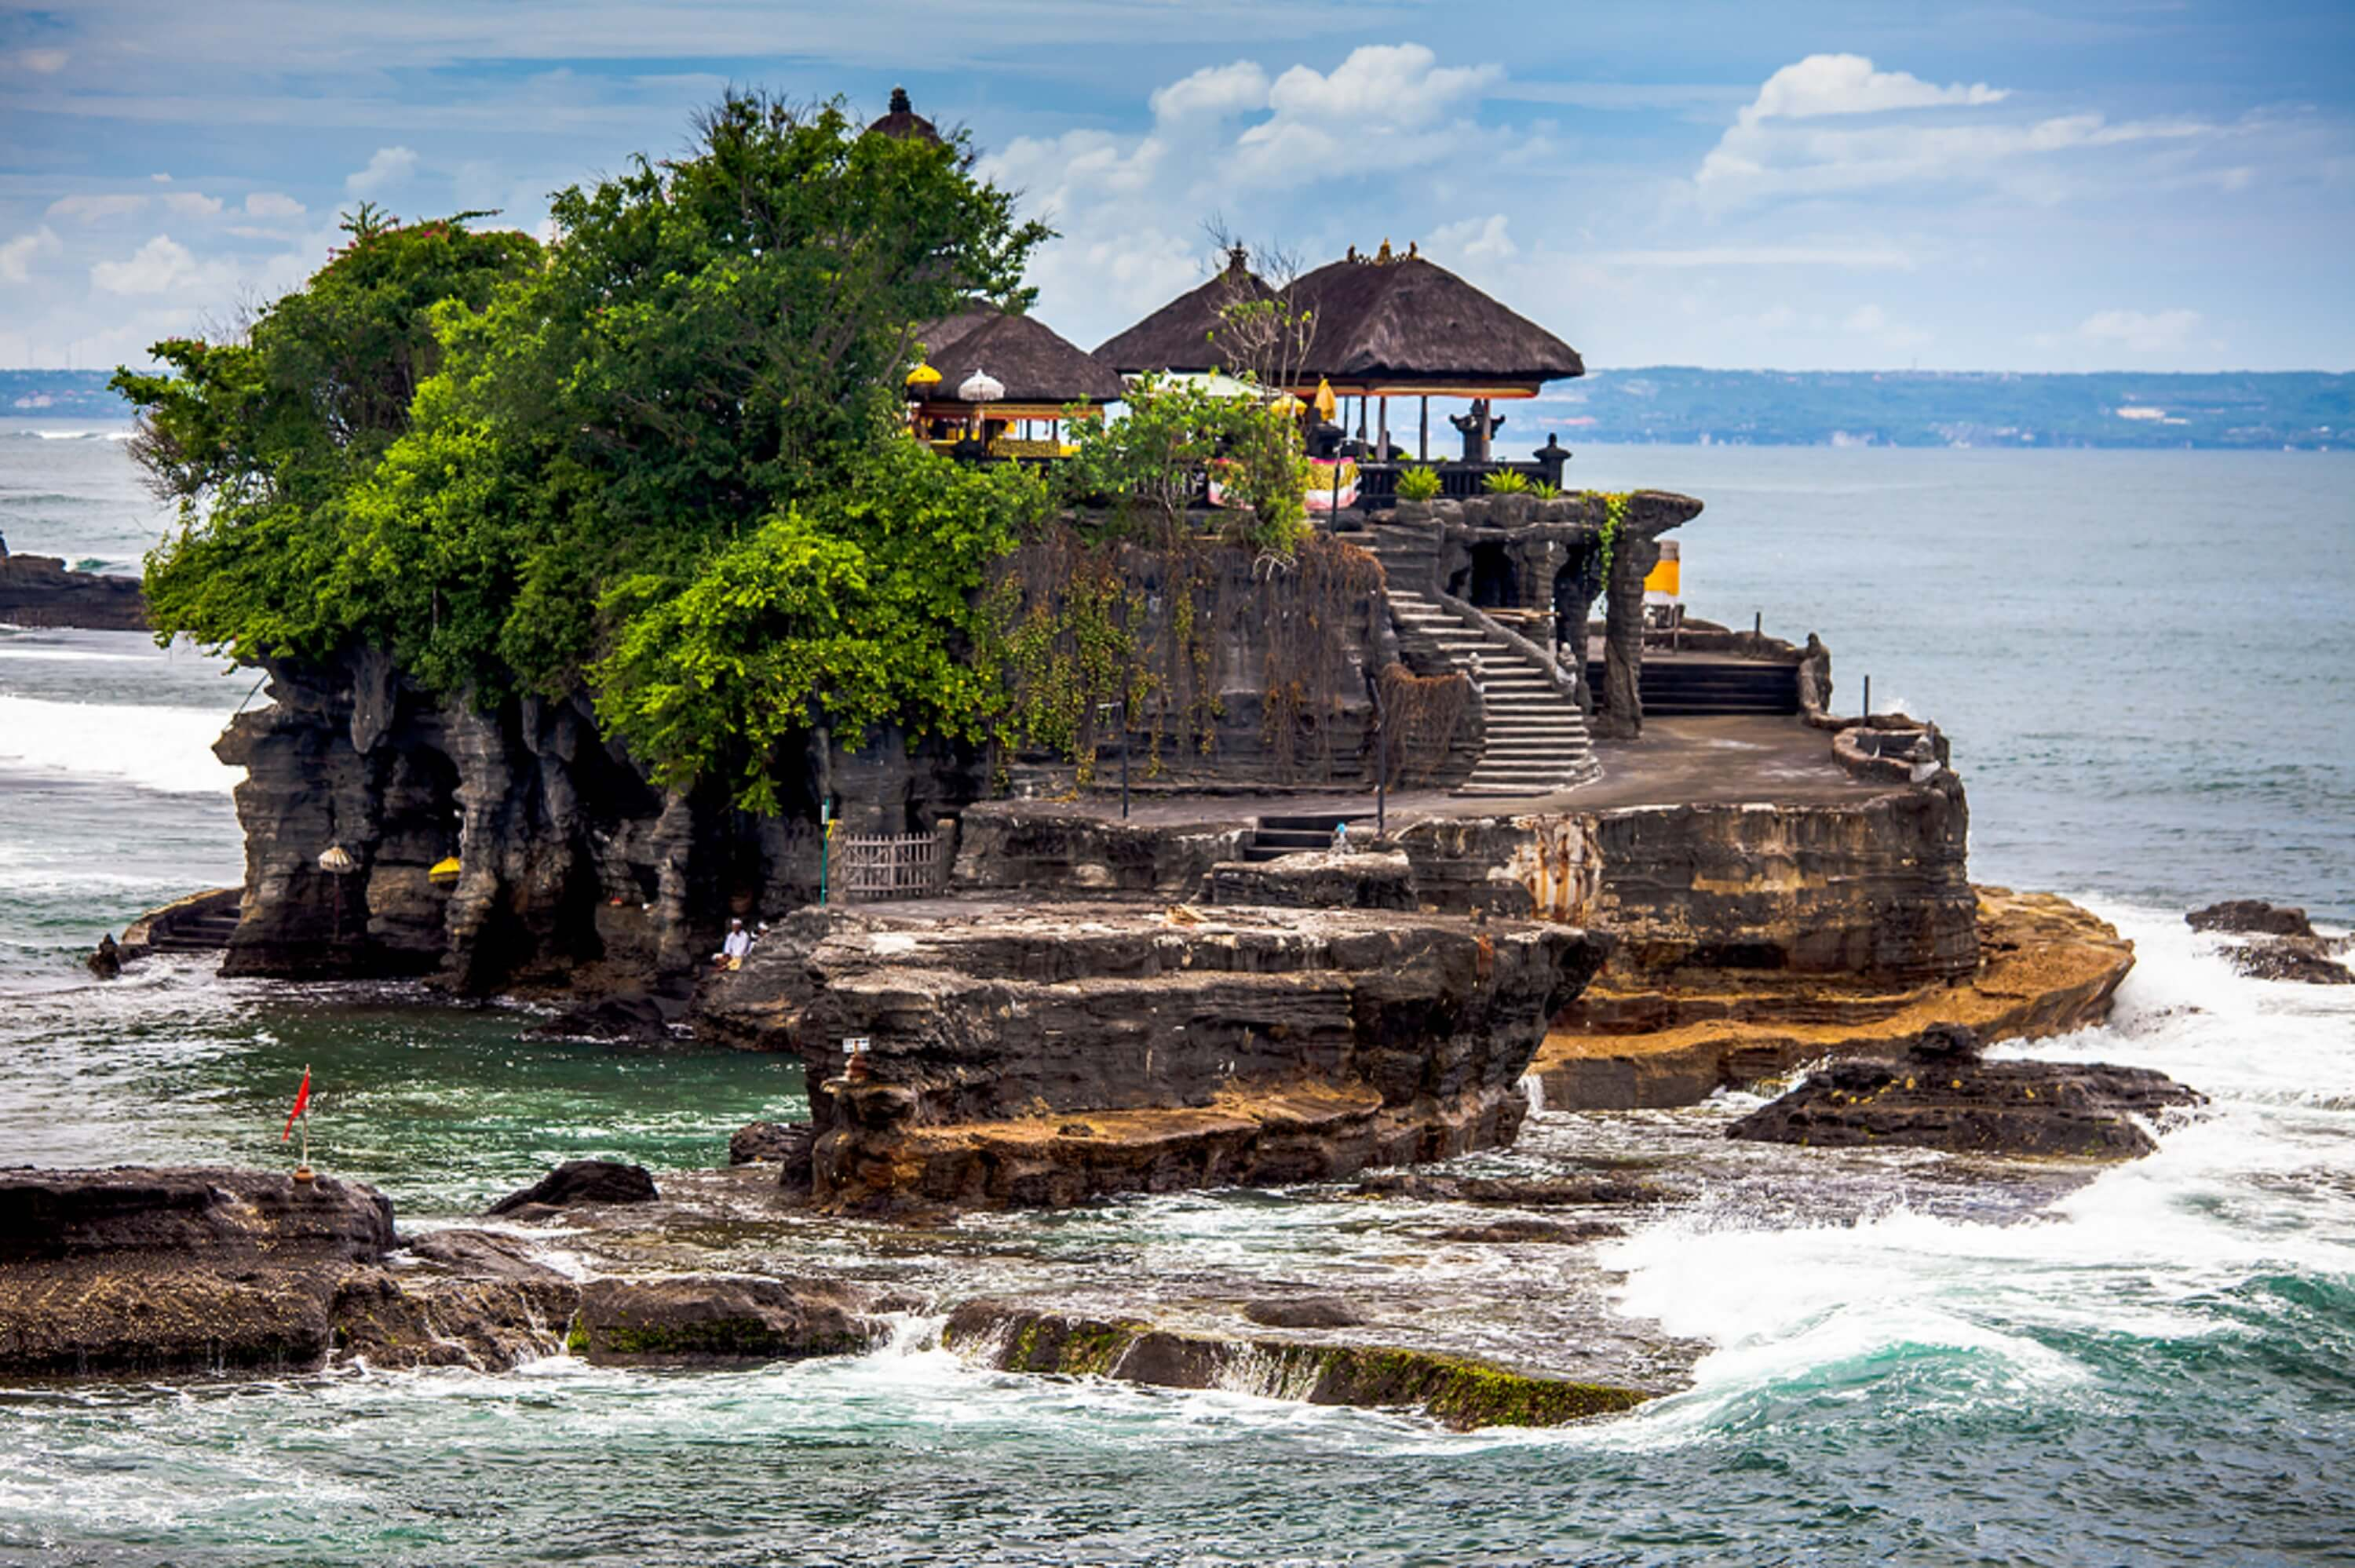 Do not visit the Tanah Lot temple with your loved one!